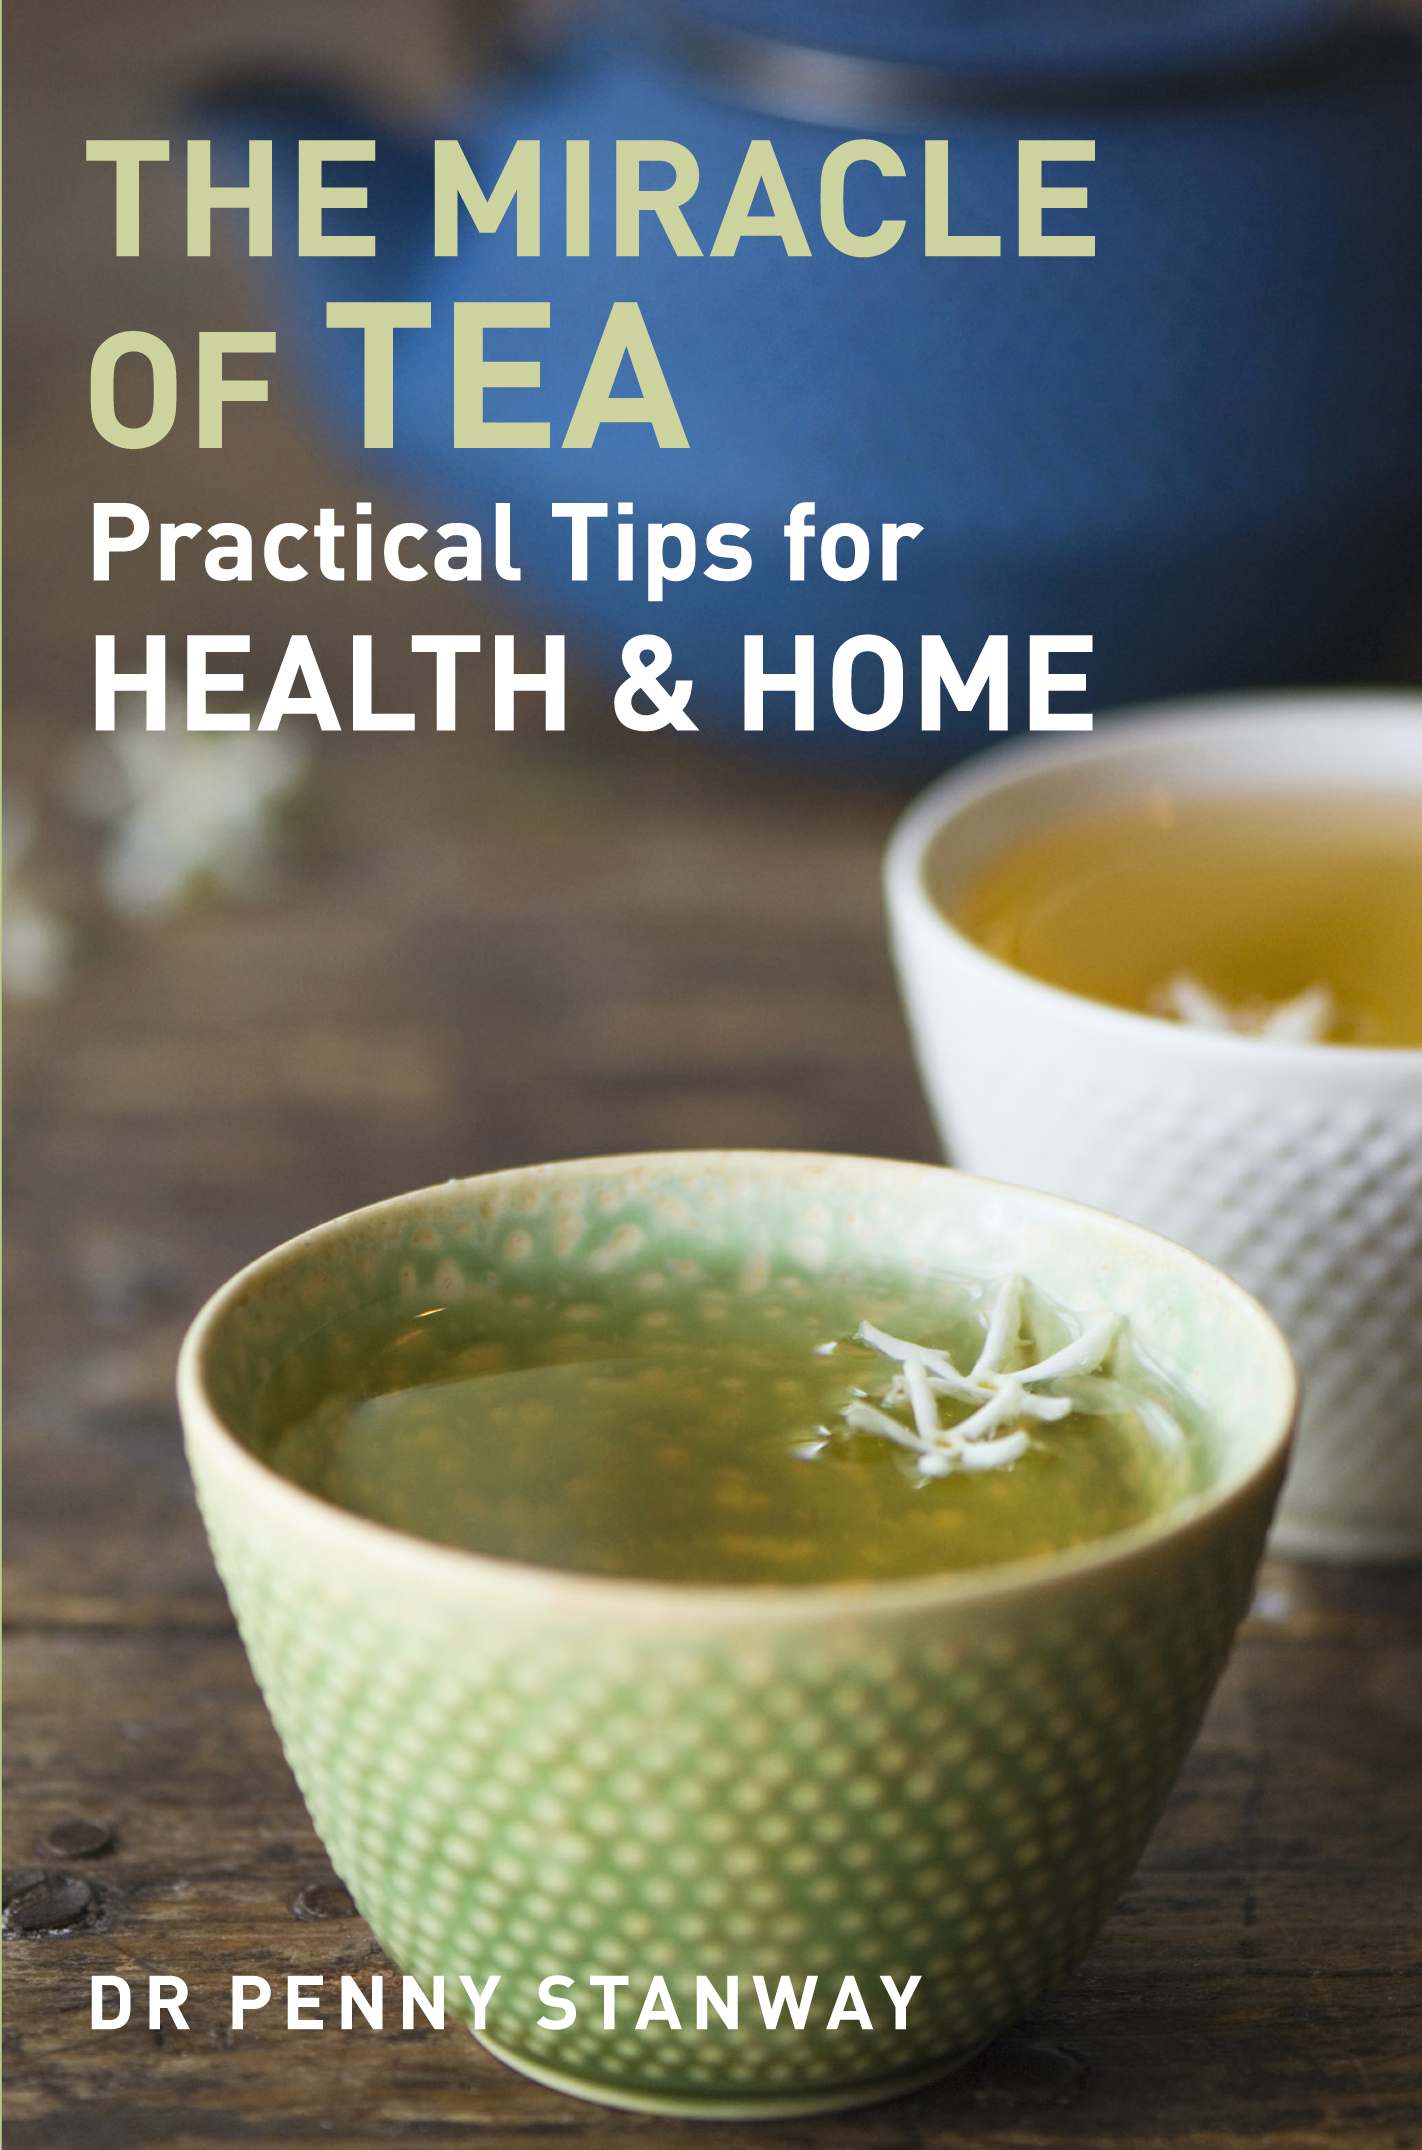 Practical Tips for Tea